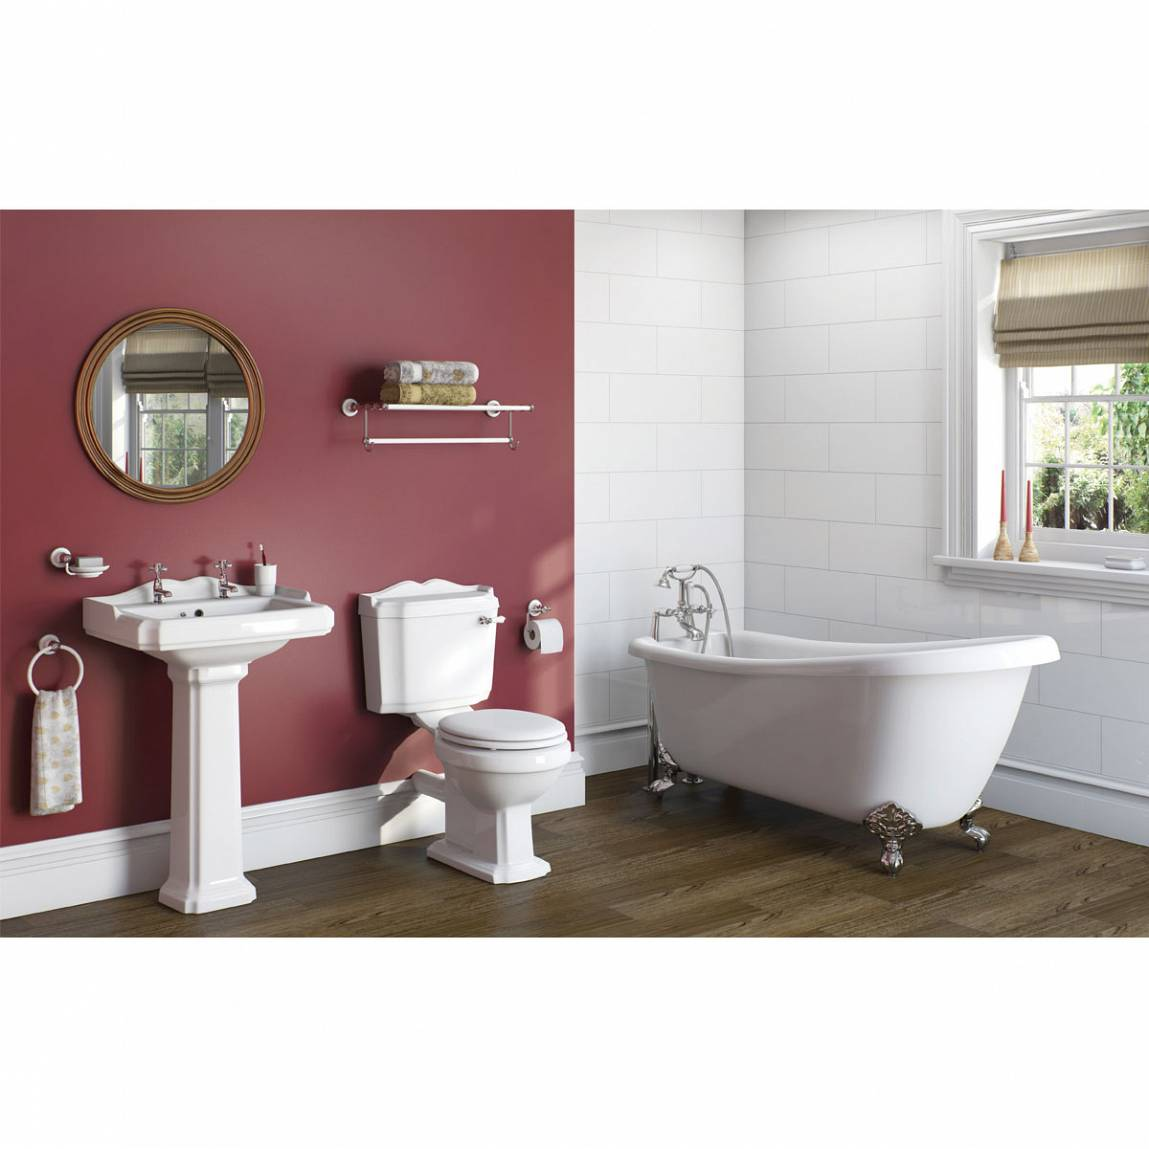 Winchester Bathroom suite with Slipper Bath